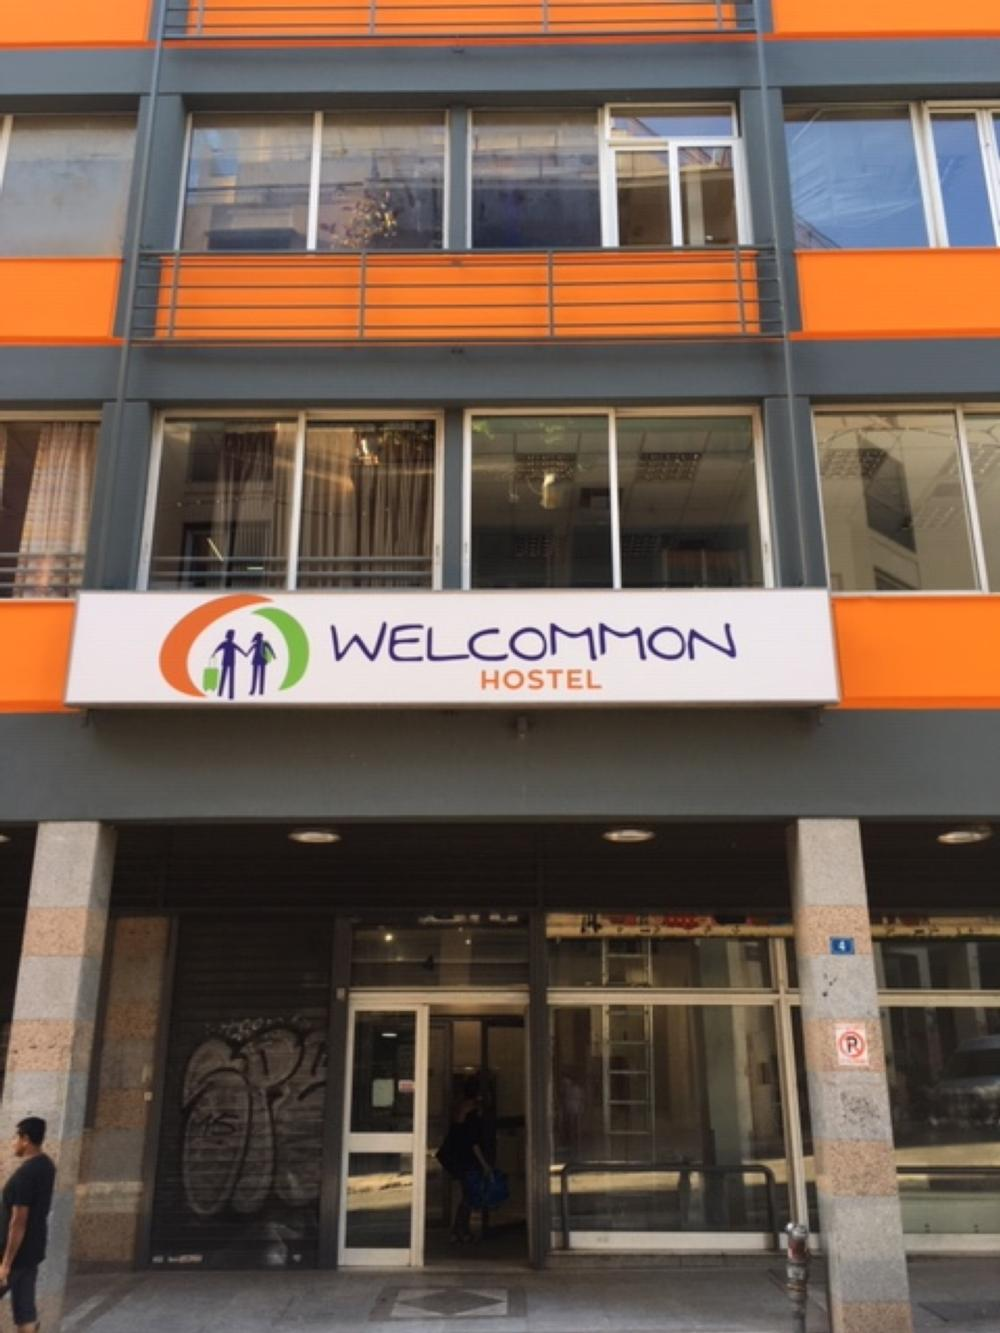 Welcommon hostel athens